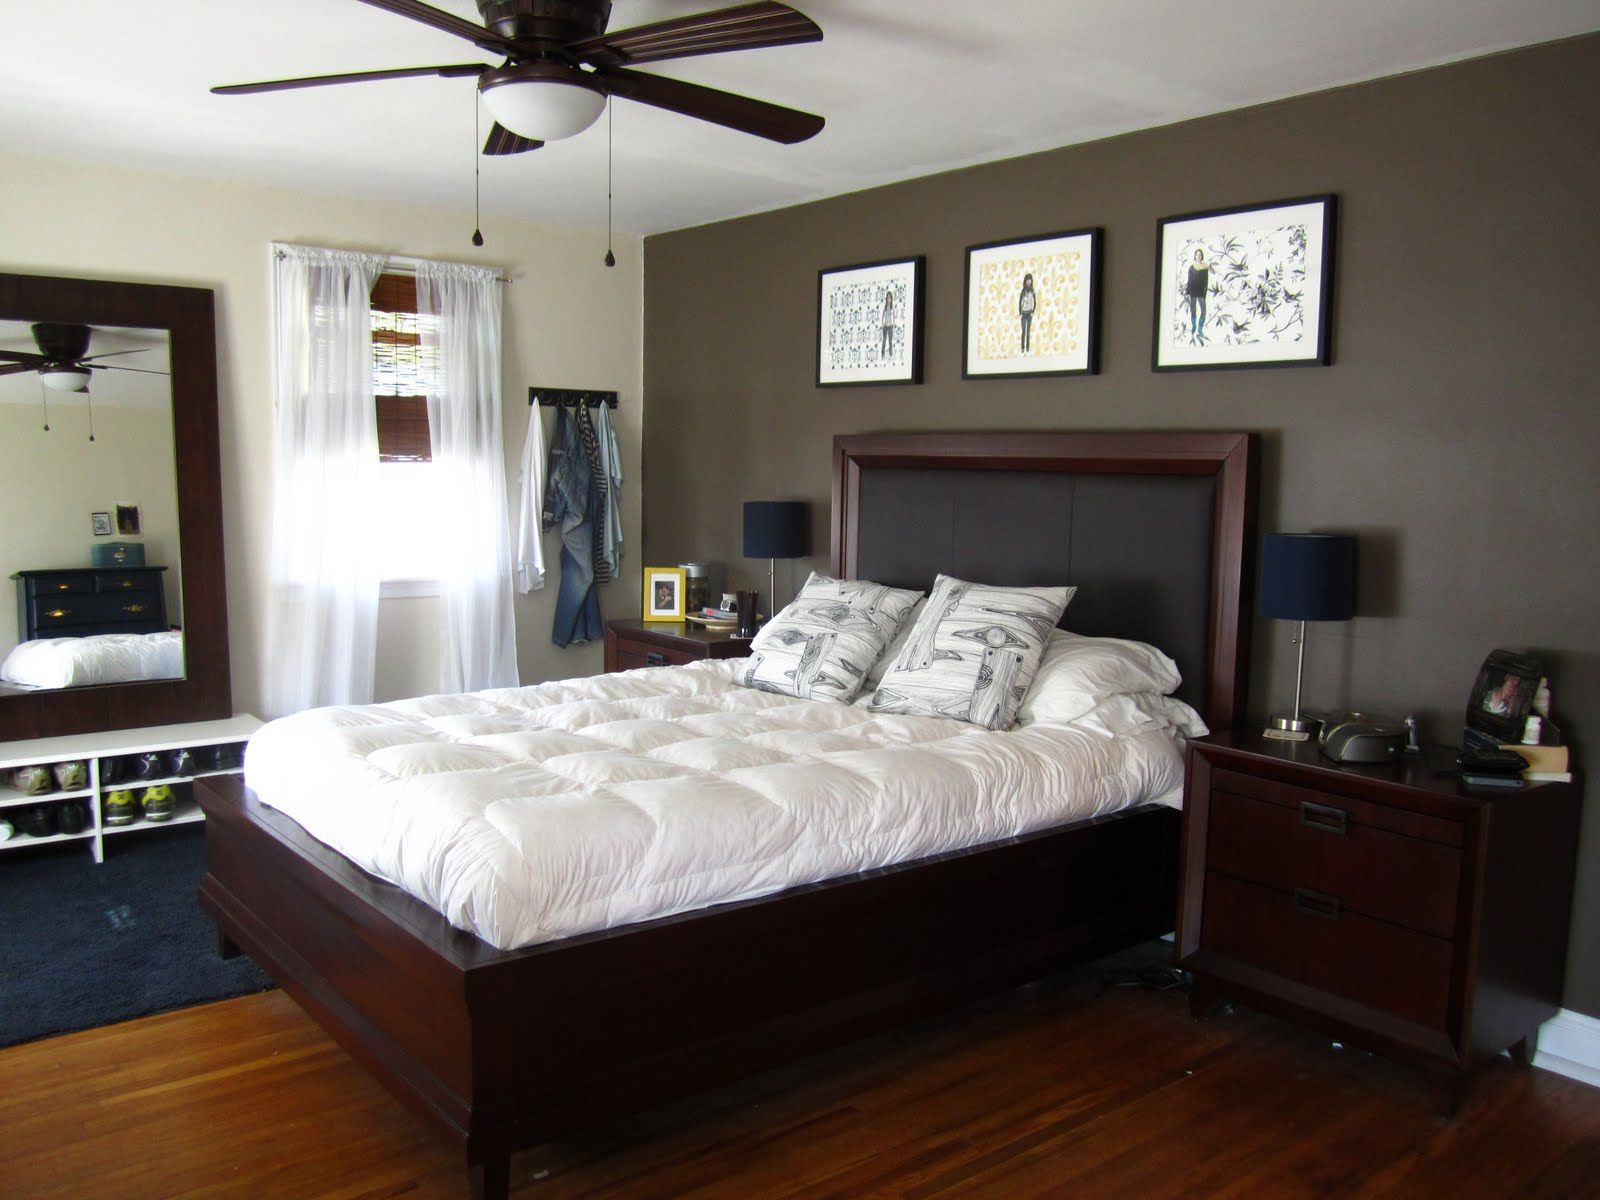 Sherwin Williams Mink accent wall color Accent wall bedroom